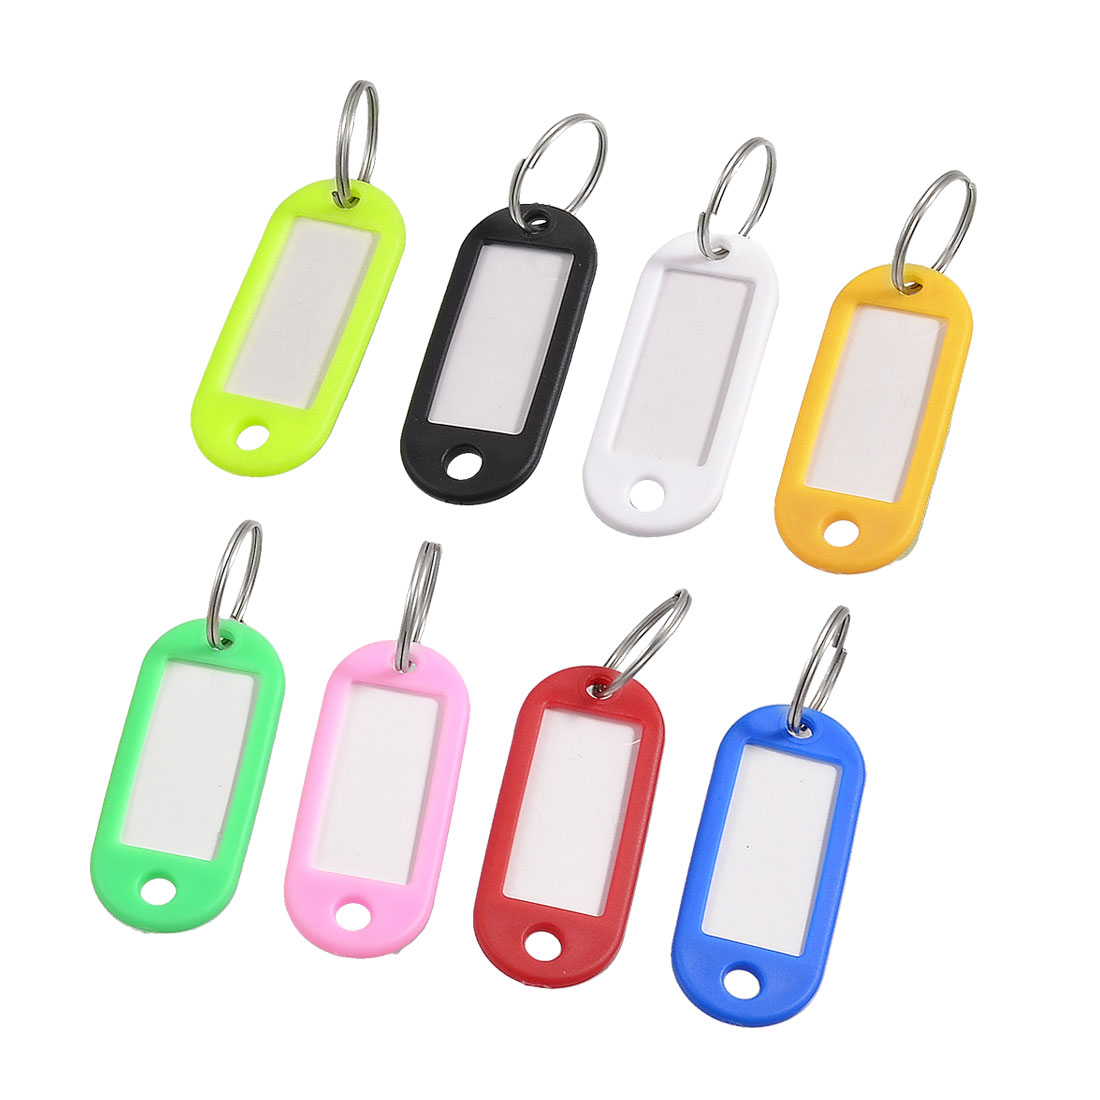 Assorted Color Plastic Name Tag Badge Clip Holder Keychain Ornament 8 Pcs